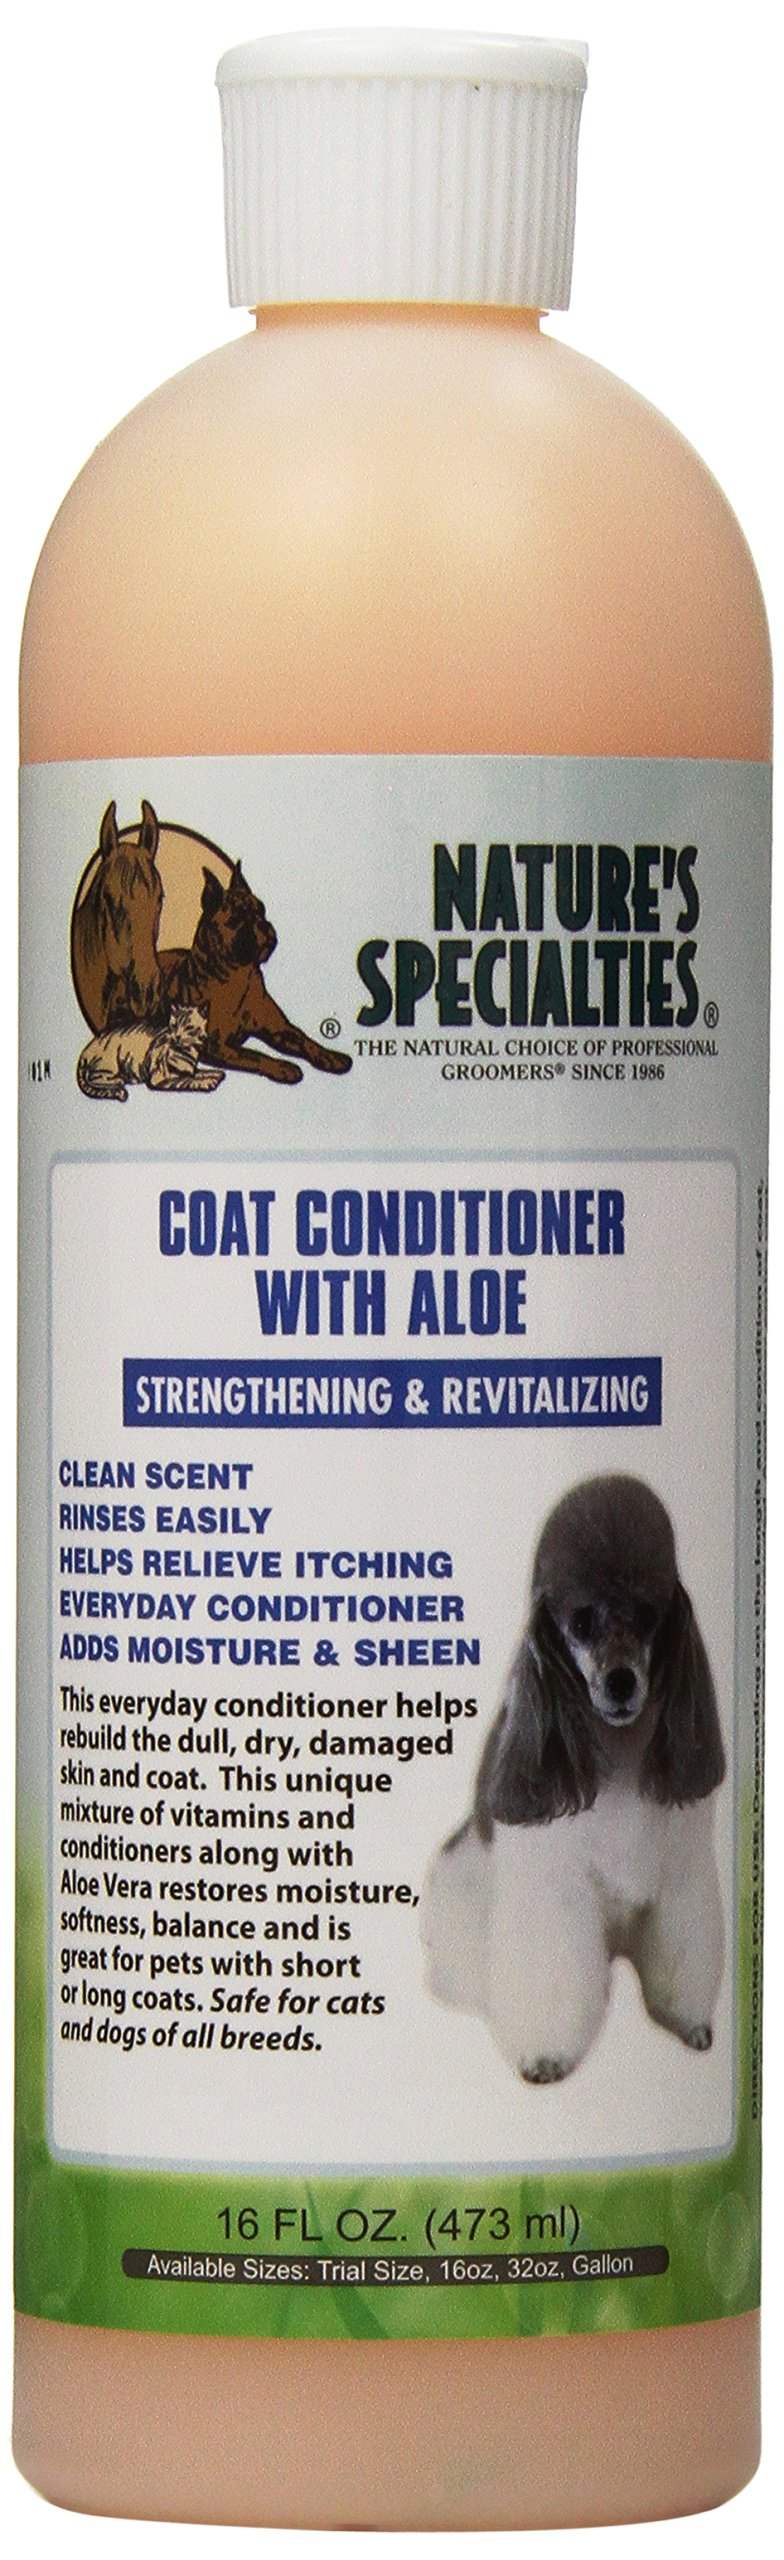 Nature's Specialties Coat Conditioner for Pets, 16-Ounce